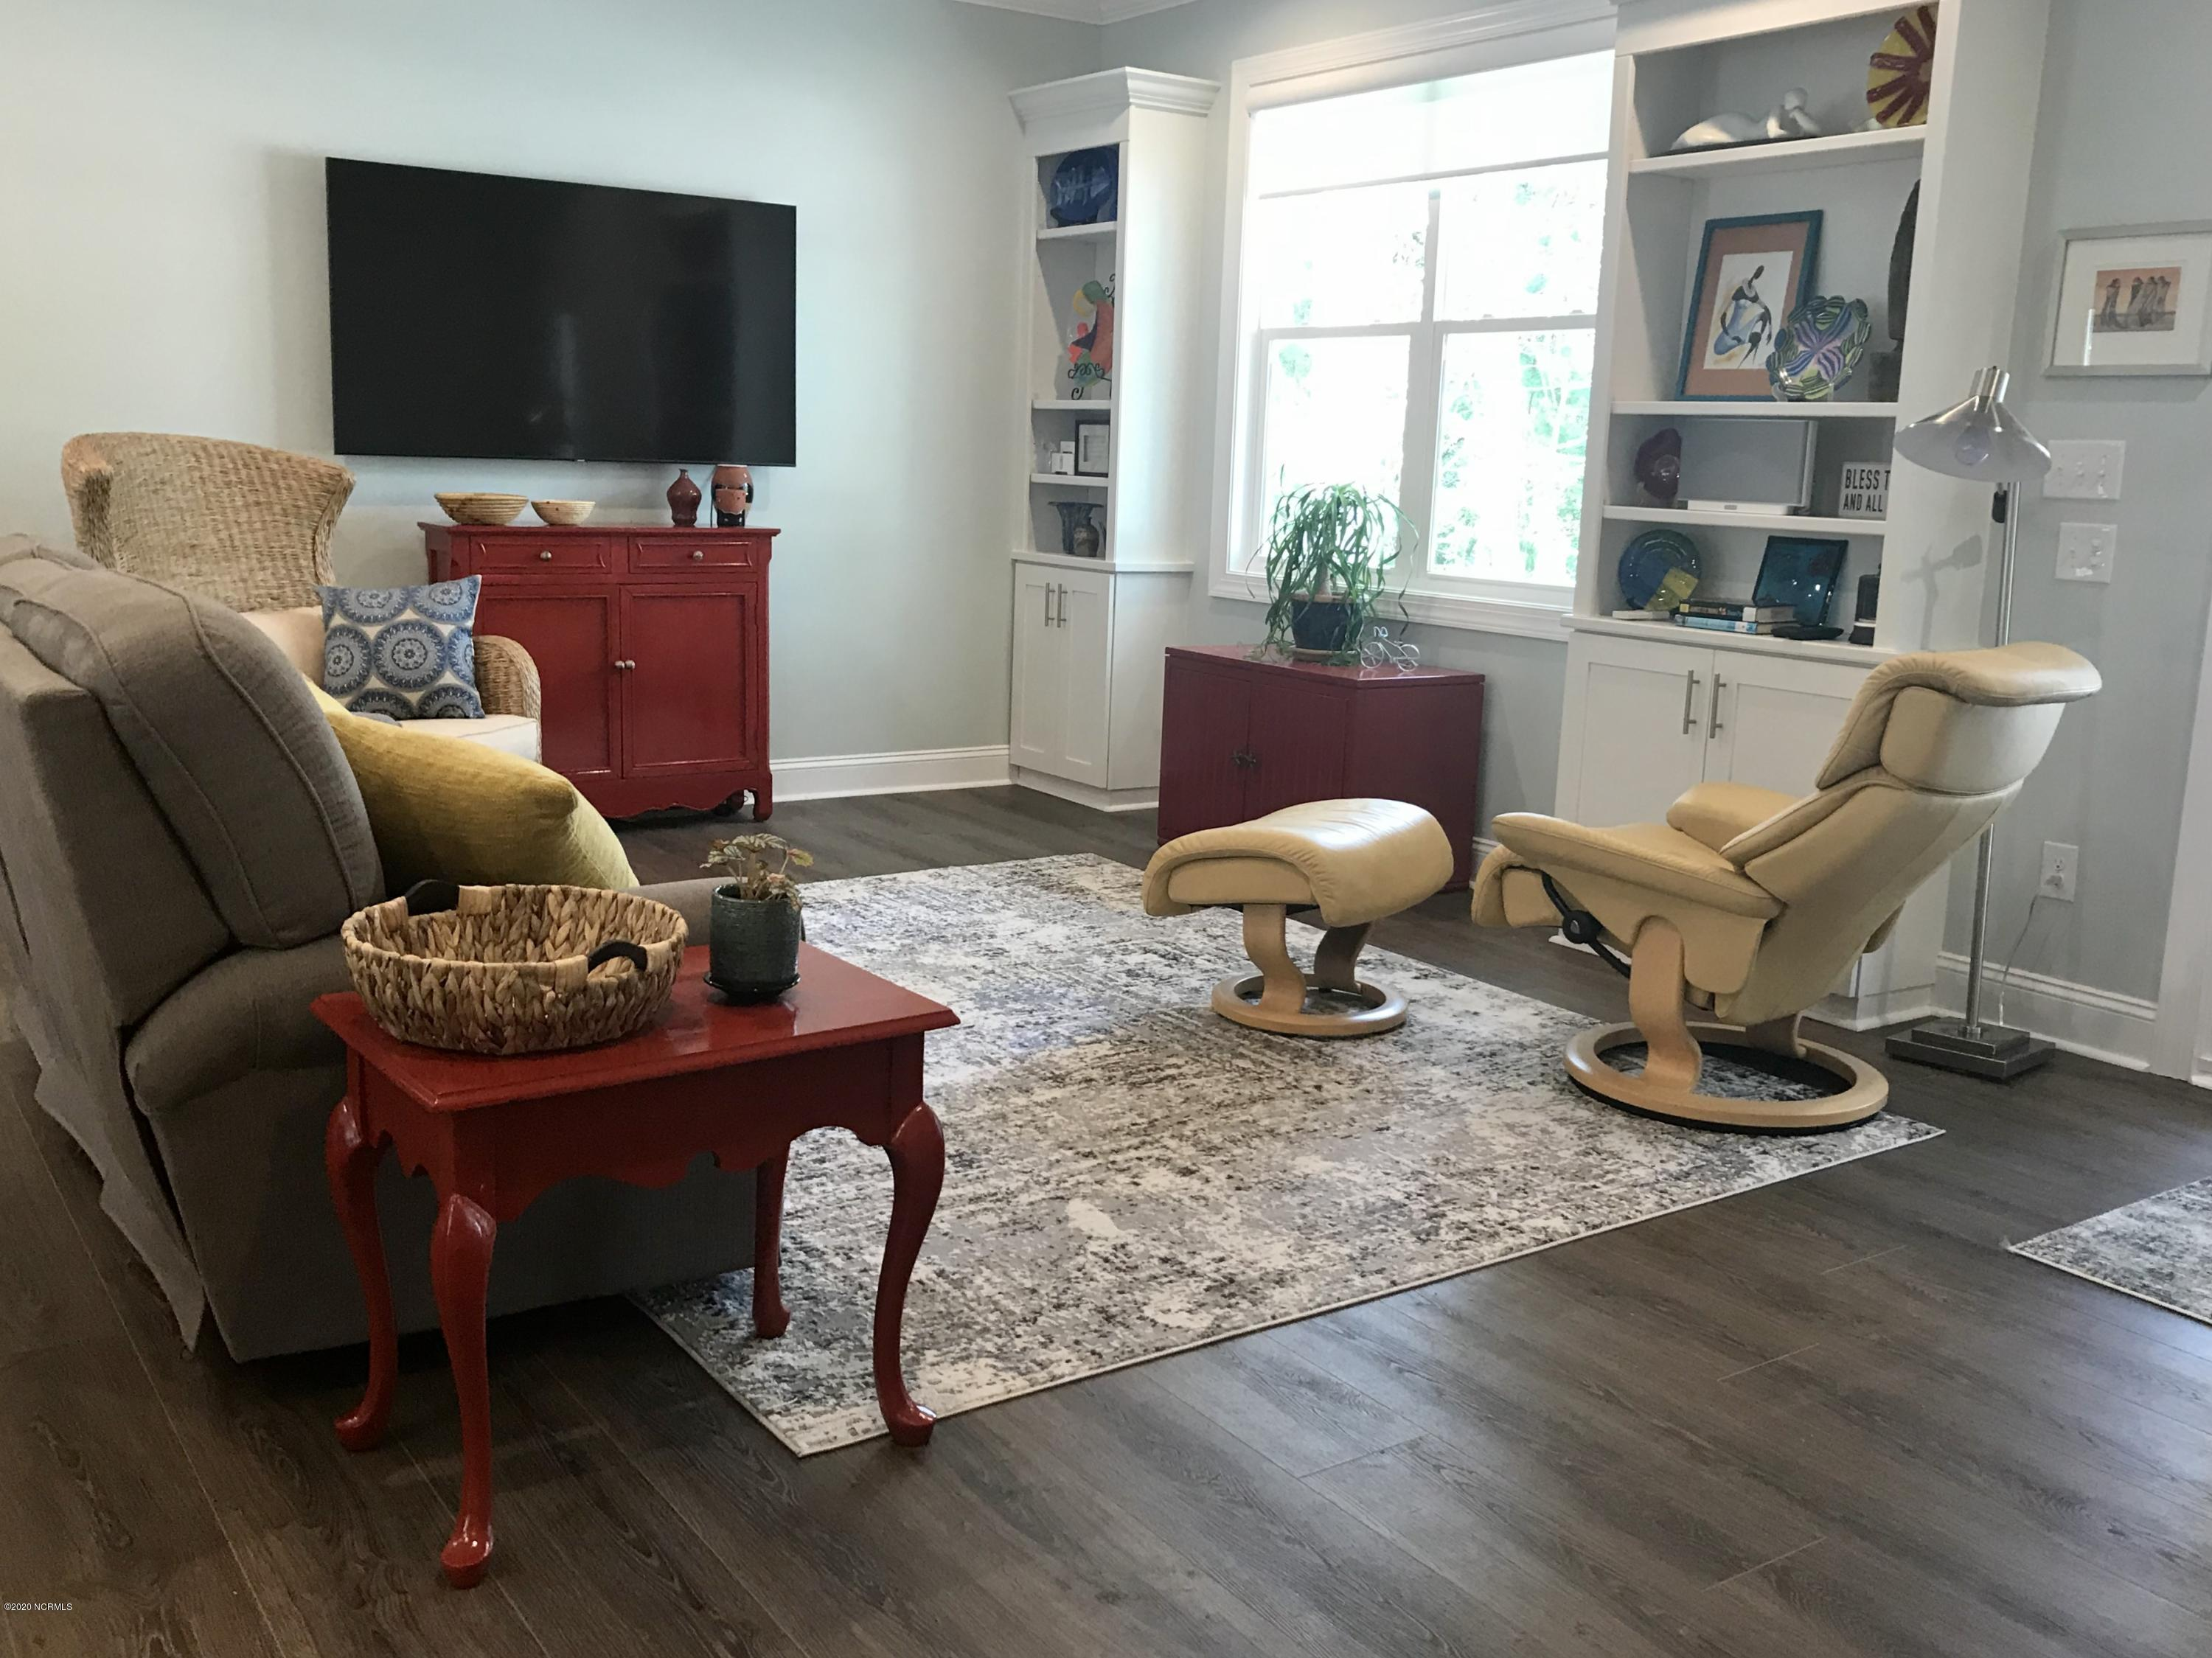 118 Evergreen Lane, Pine Knoll Shores, North Carolina 28512, 3 Bedrooms Bedrooms, 5 Rooms Rooms,2 BathroomsBathrooms,Single family residence,For sale,Evergreen,100190252